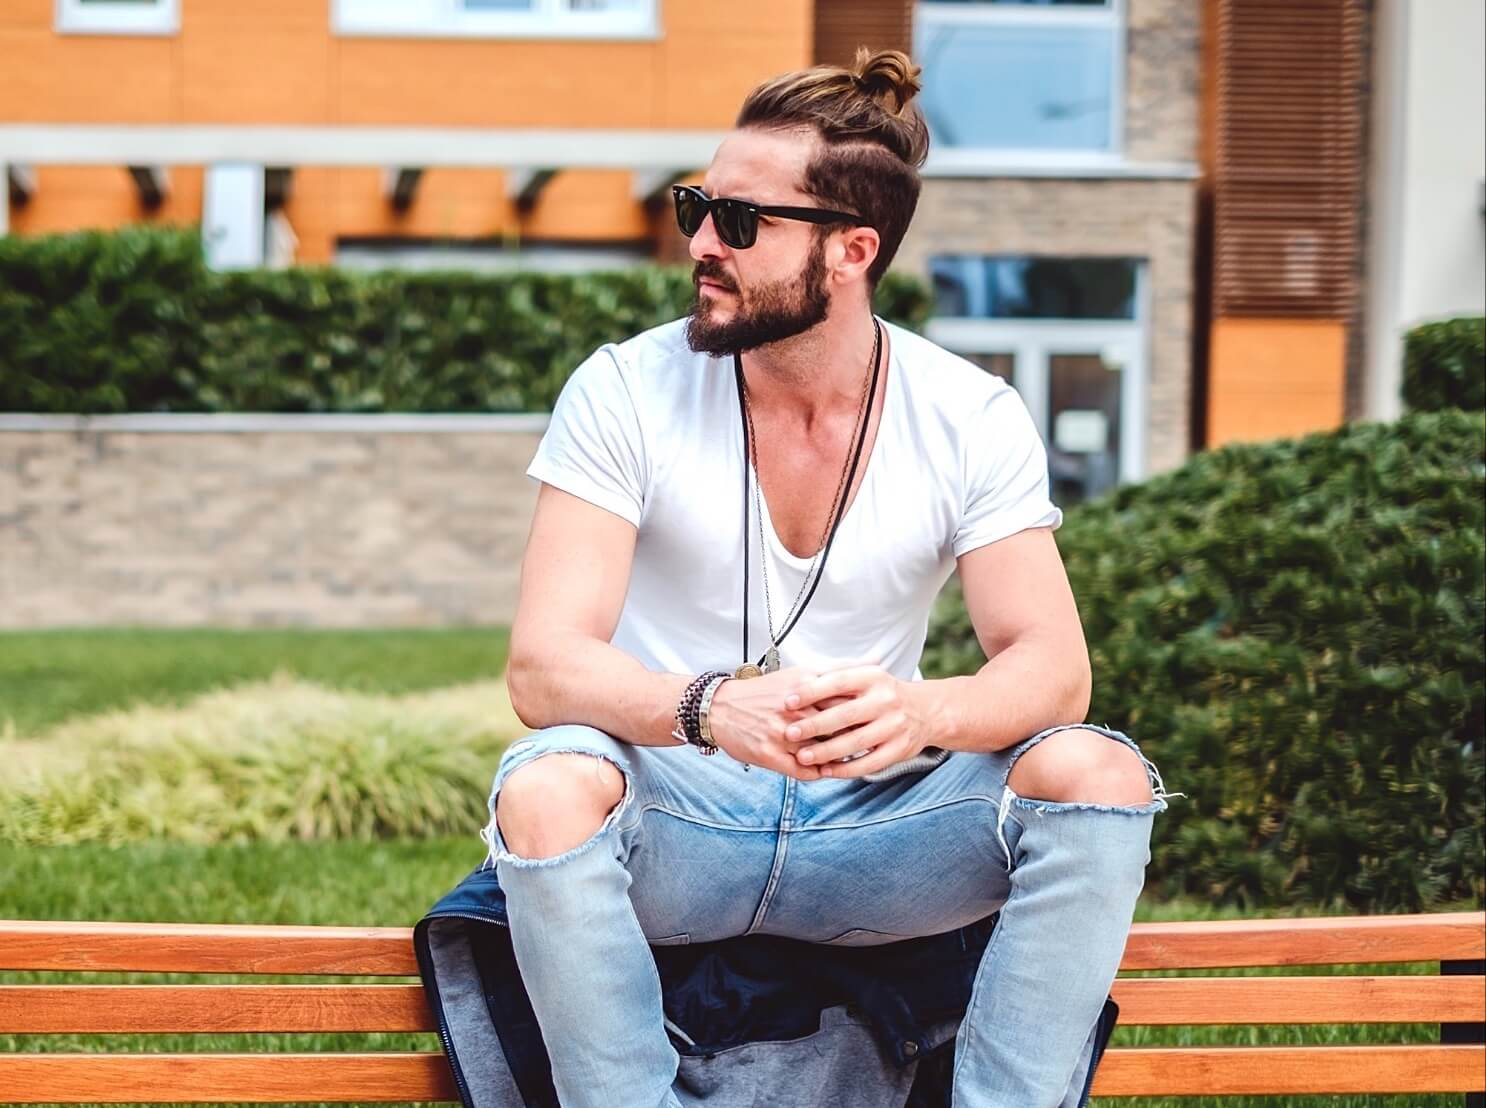 man with undercut bun